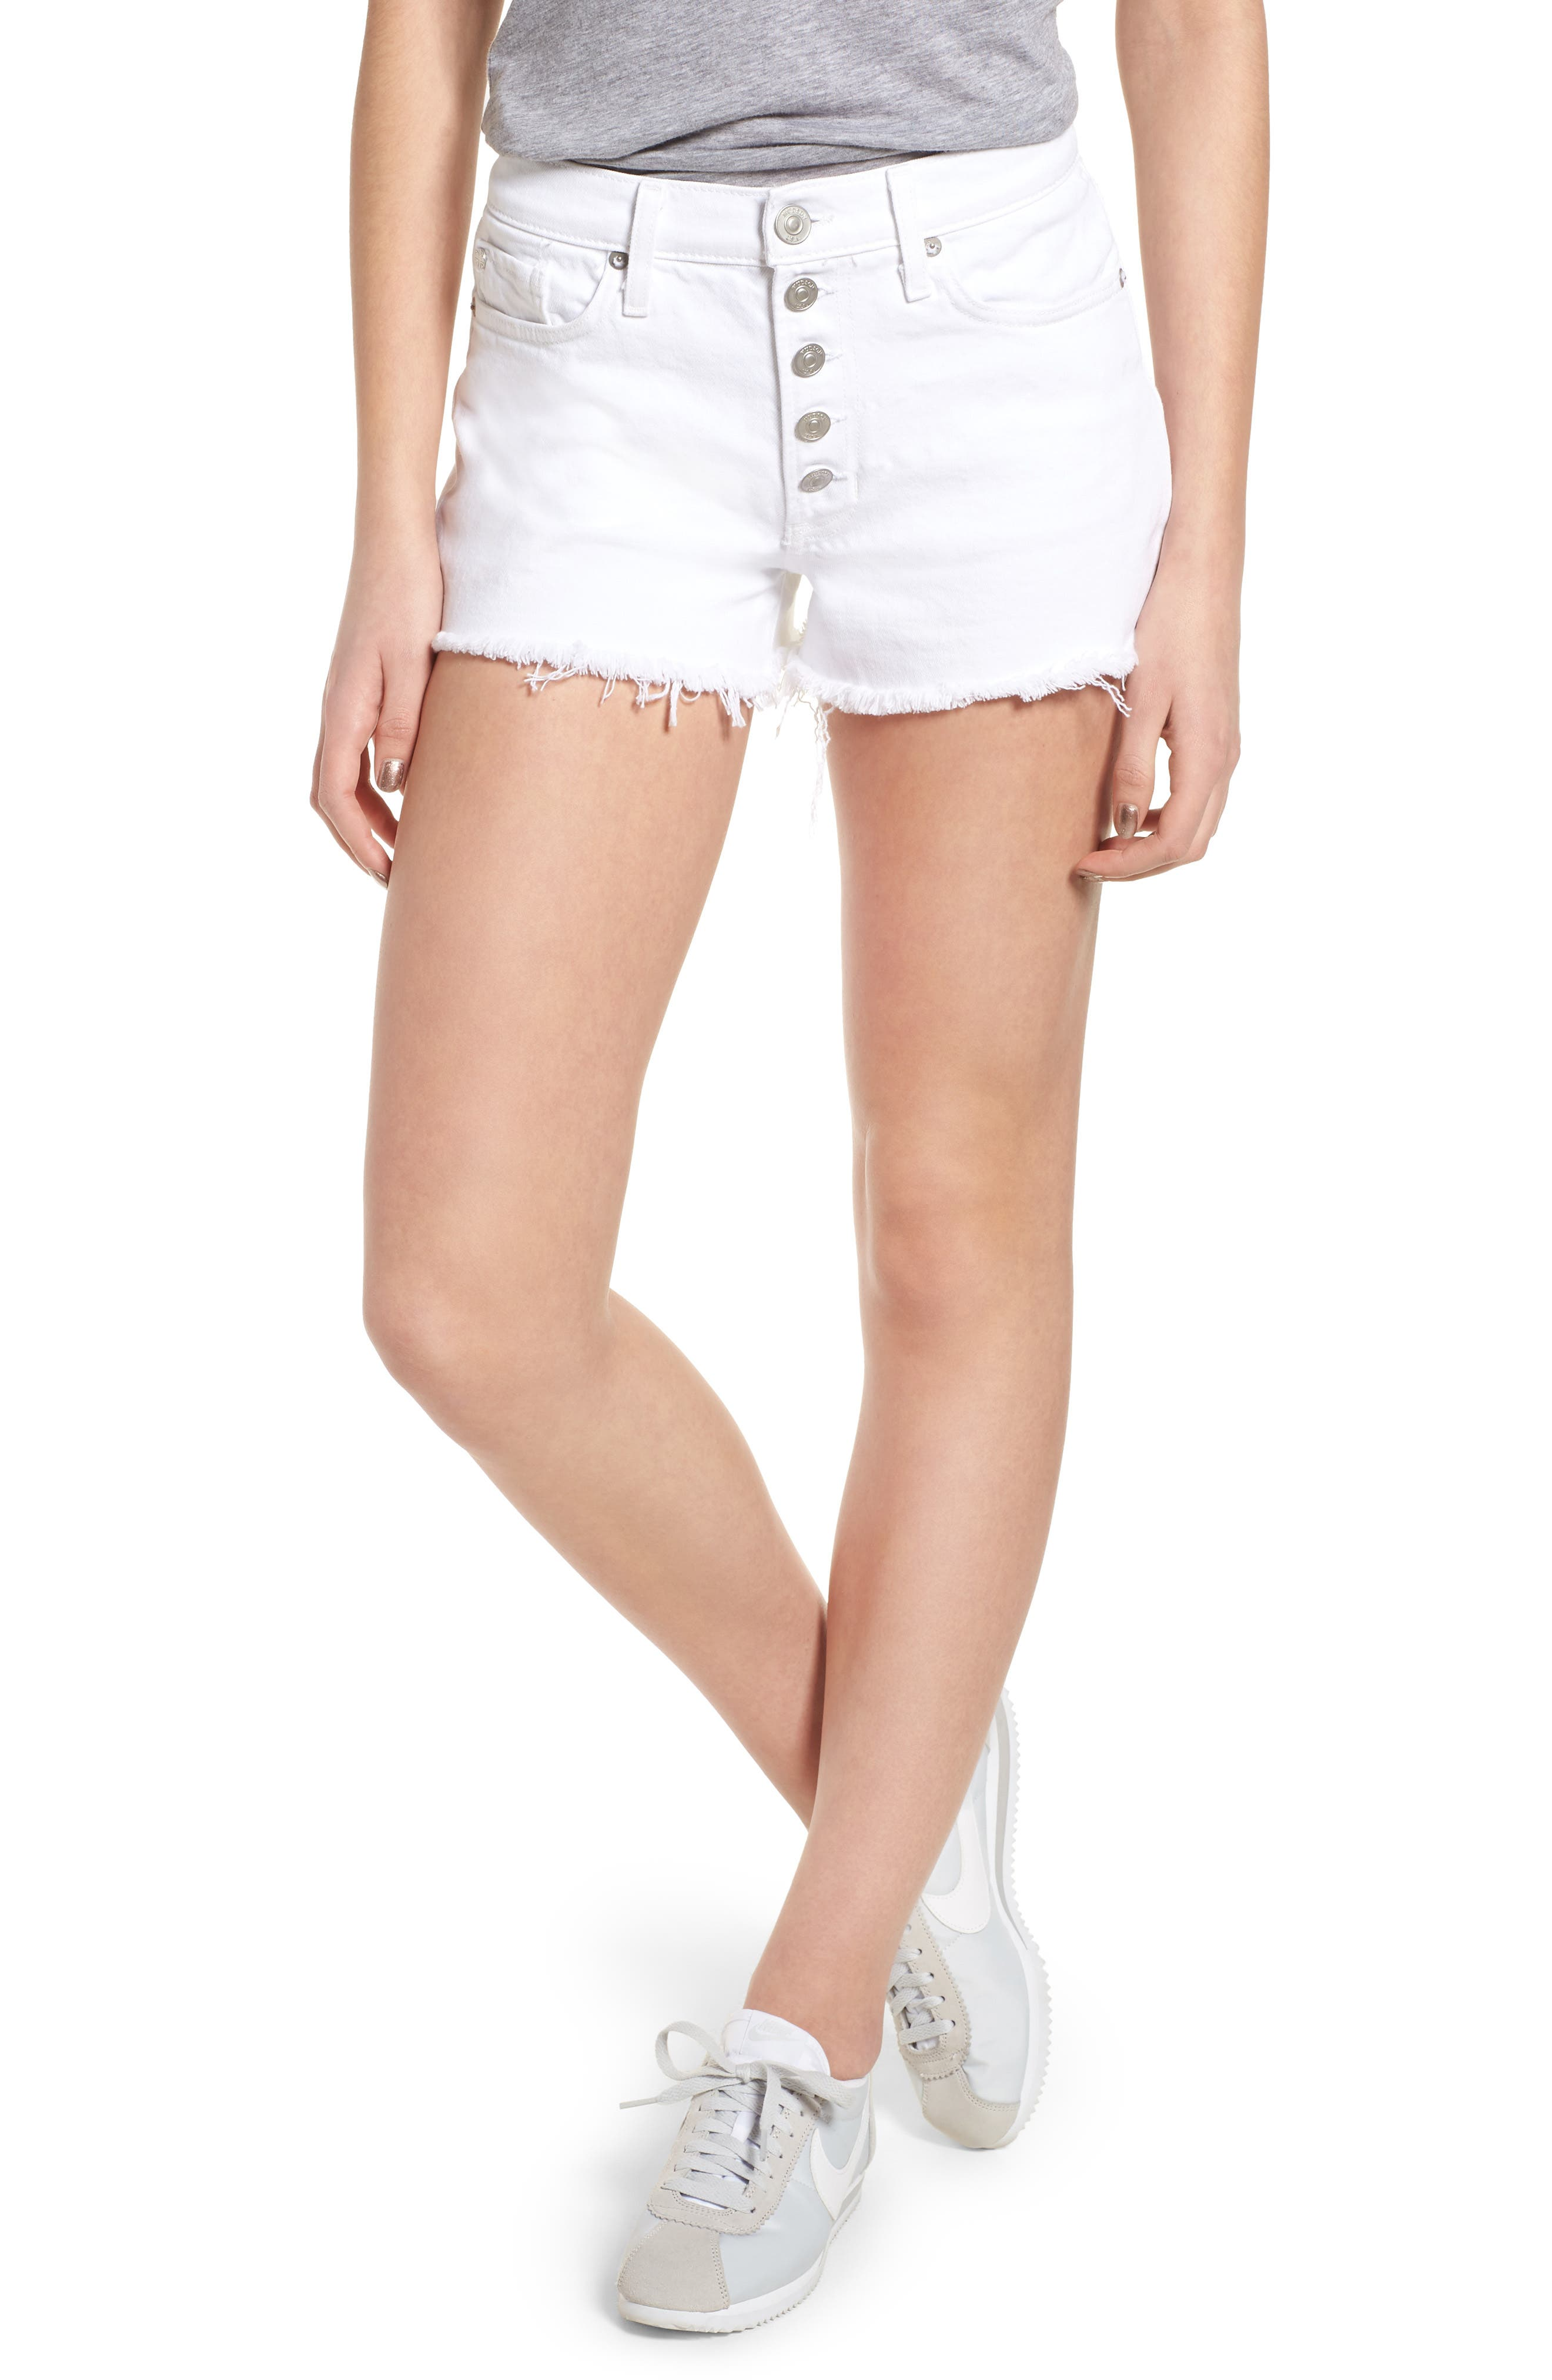 Zoeey Button Fly High Waist Denim Shorts,                         Main,                         color, White